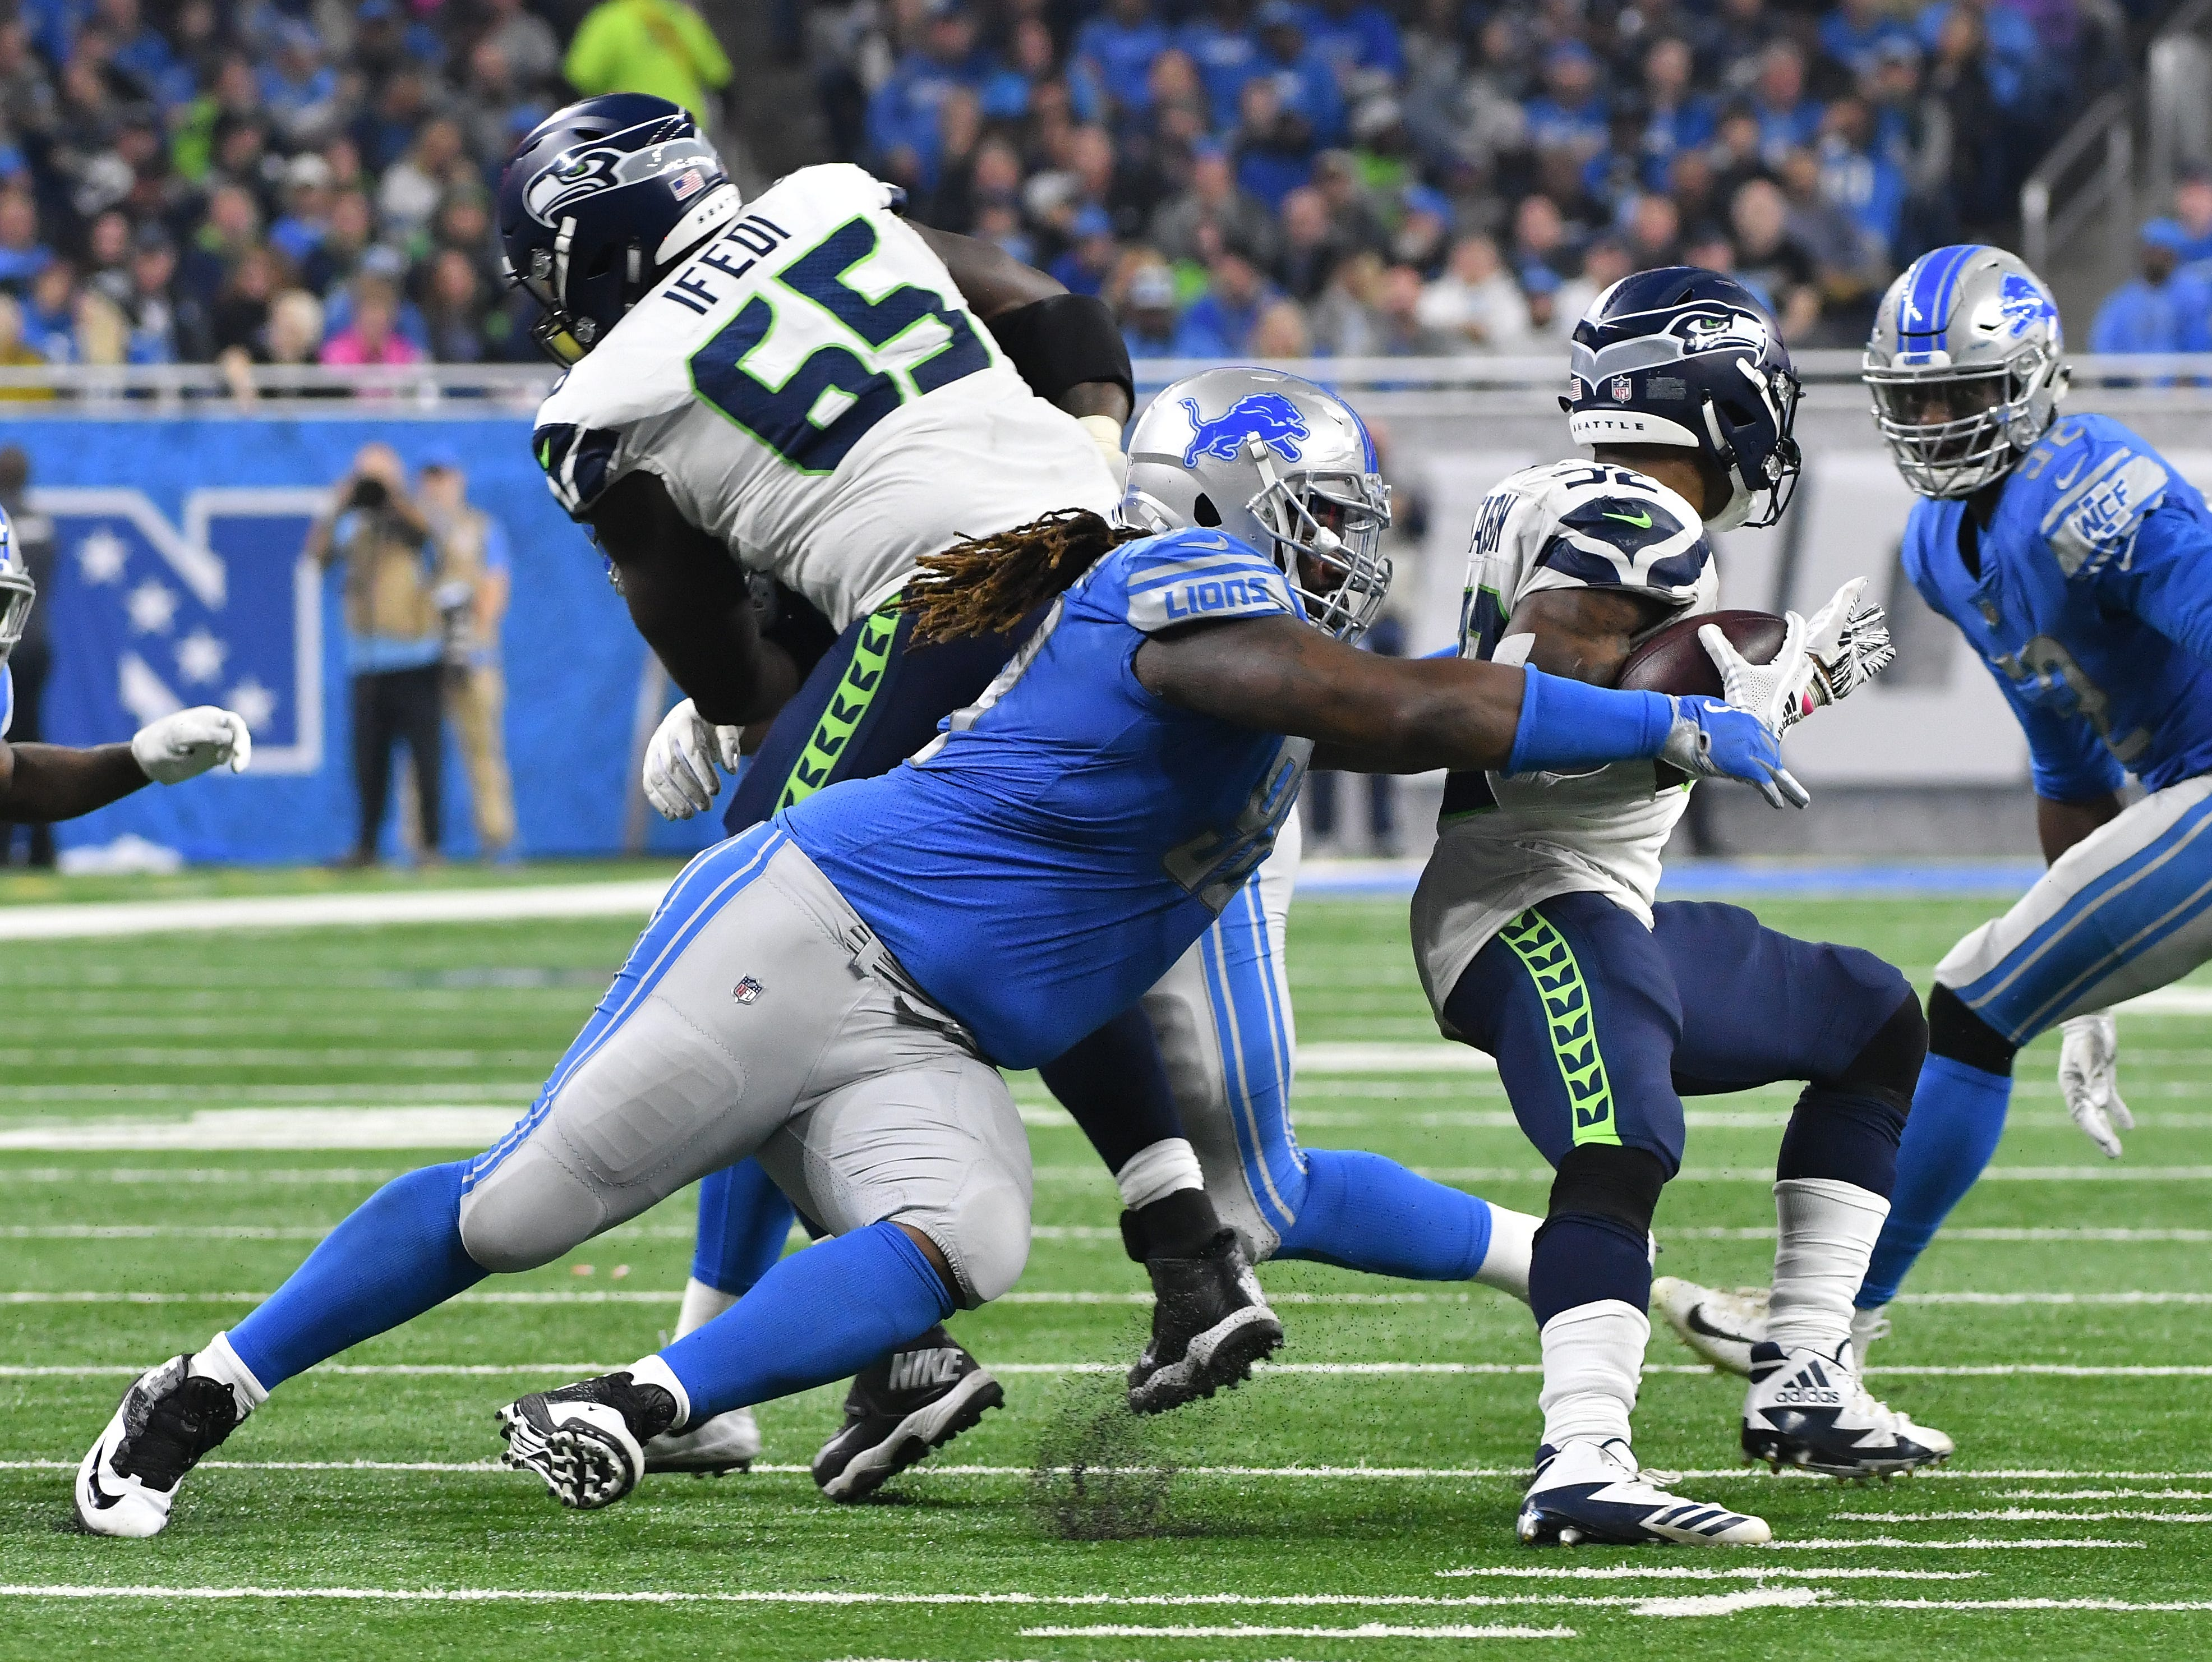 DT Damon Harrison: Yeah, he's only been here two weeks, but Harrison is everything the Lions hoped he'd be. A run-stuffer extraordinaire, opponents have had almost no success running at or near his gap. And he's also shown a touch of juice when rushing the passer, dropping the ever-elusive Russell Wilson a week ago. Grade: A